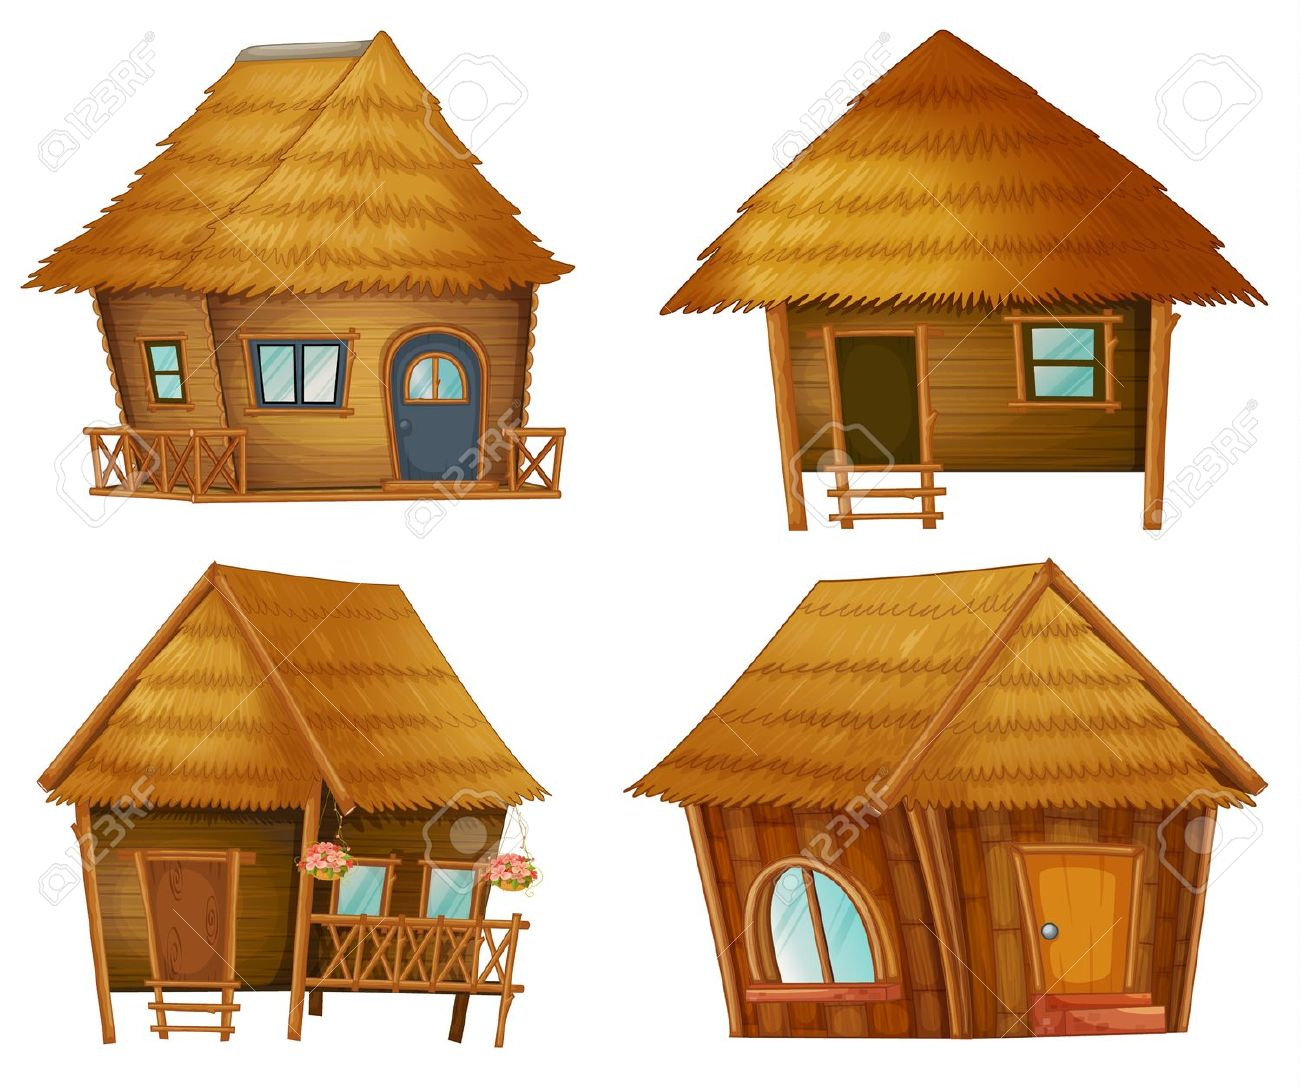 Hut clipart #7, Download drawings